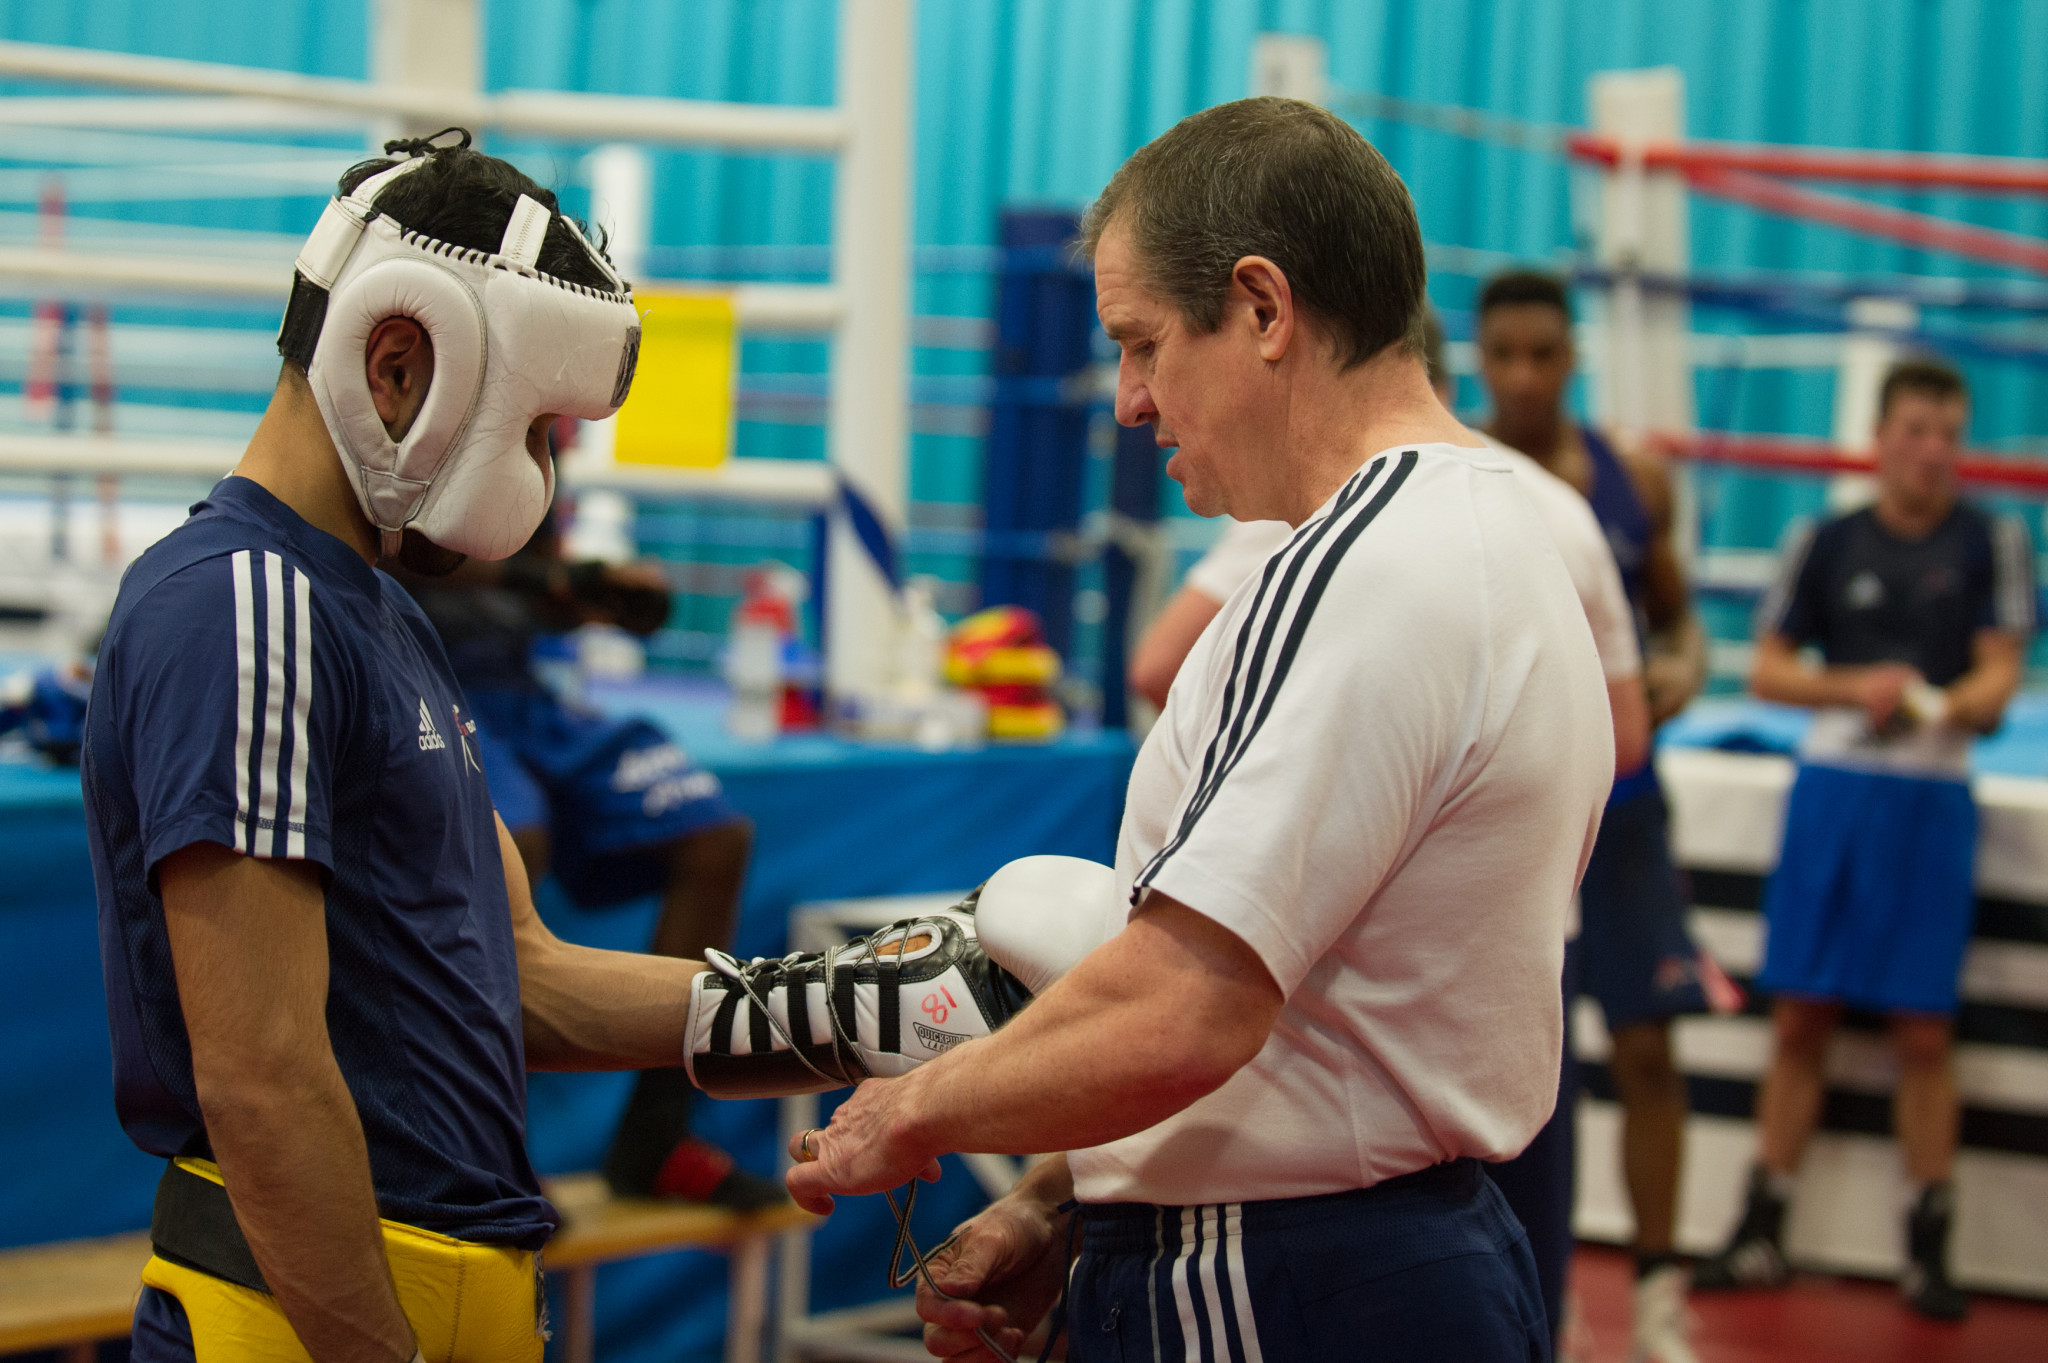 Paul Walmsley, left, has played a big part in Britain's boxing success over the past decade ©GB Boxing